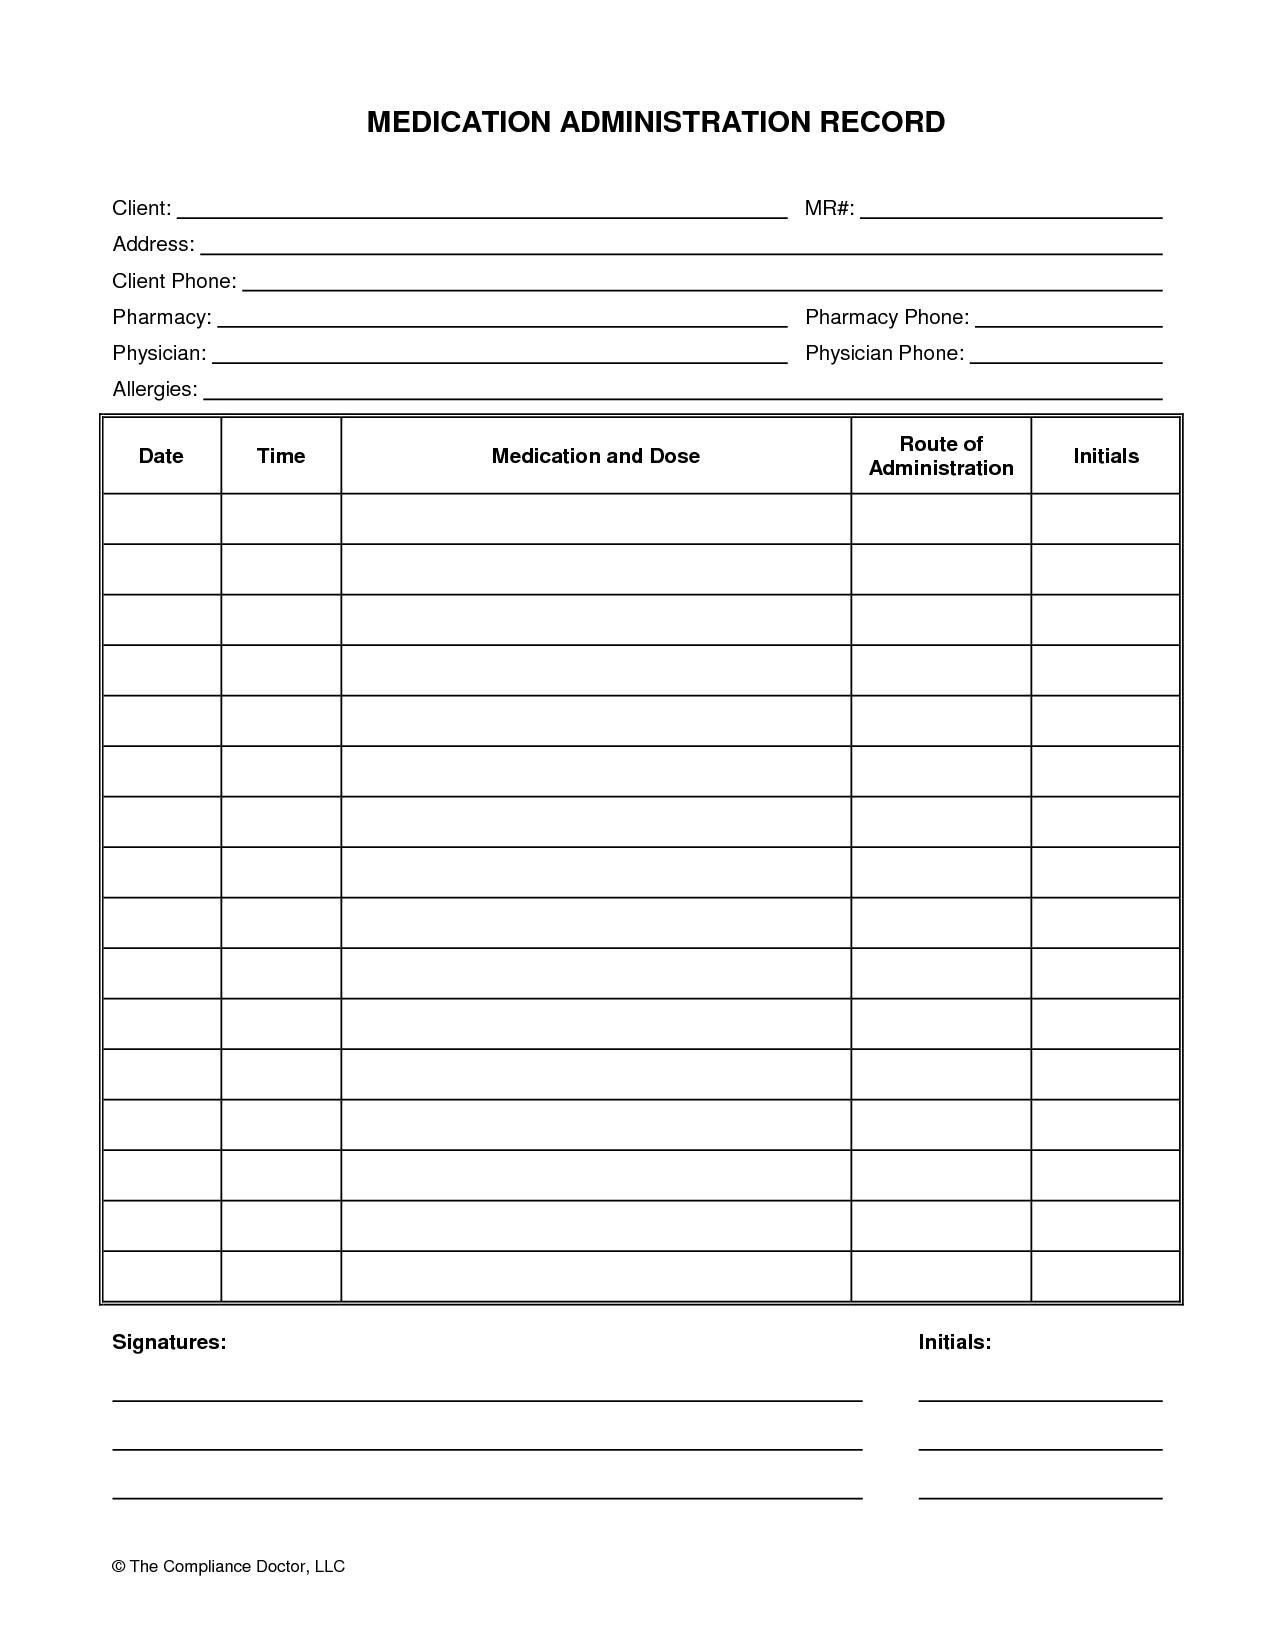 Medication Administration Record Template